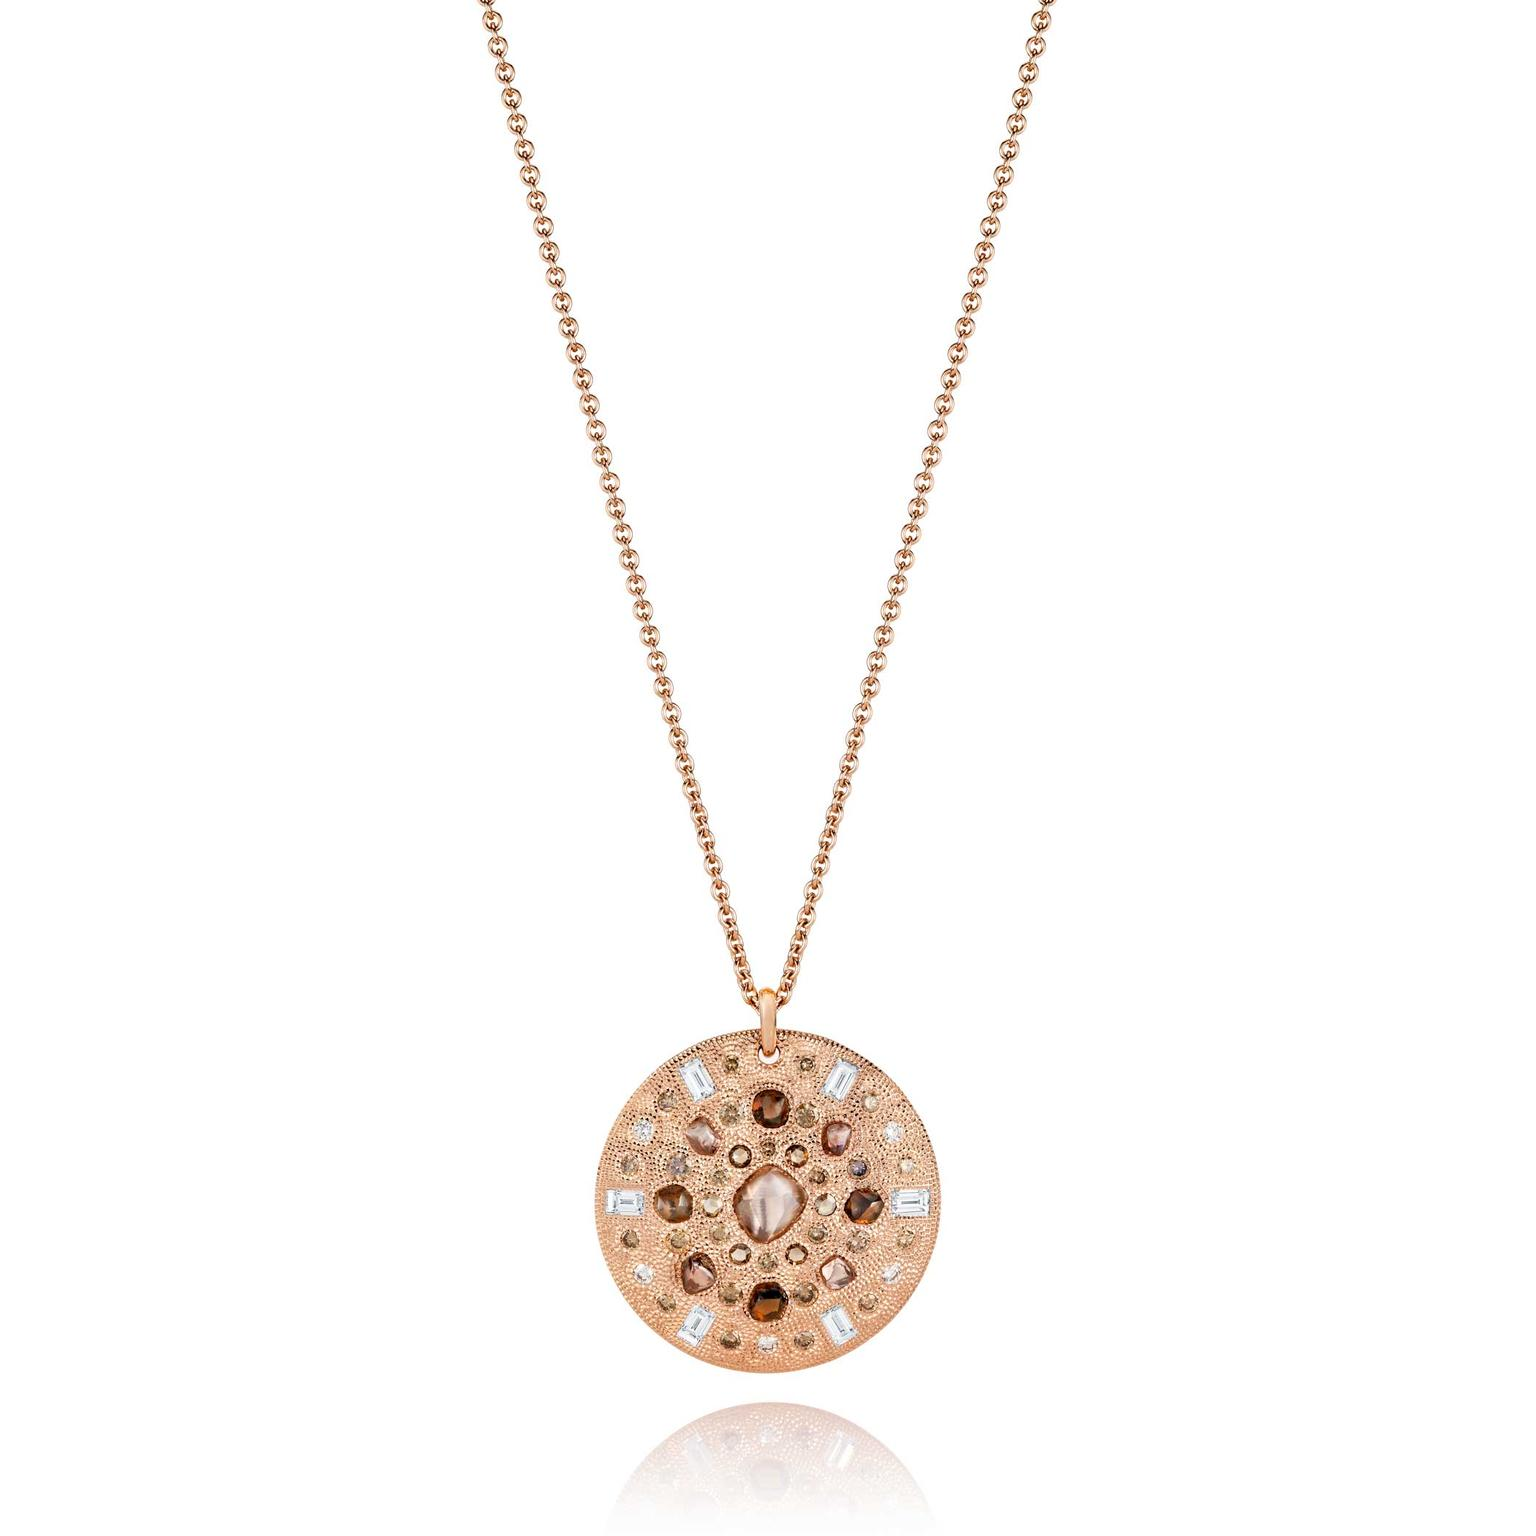 De Beers Talisman medallion in pink gold